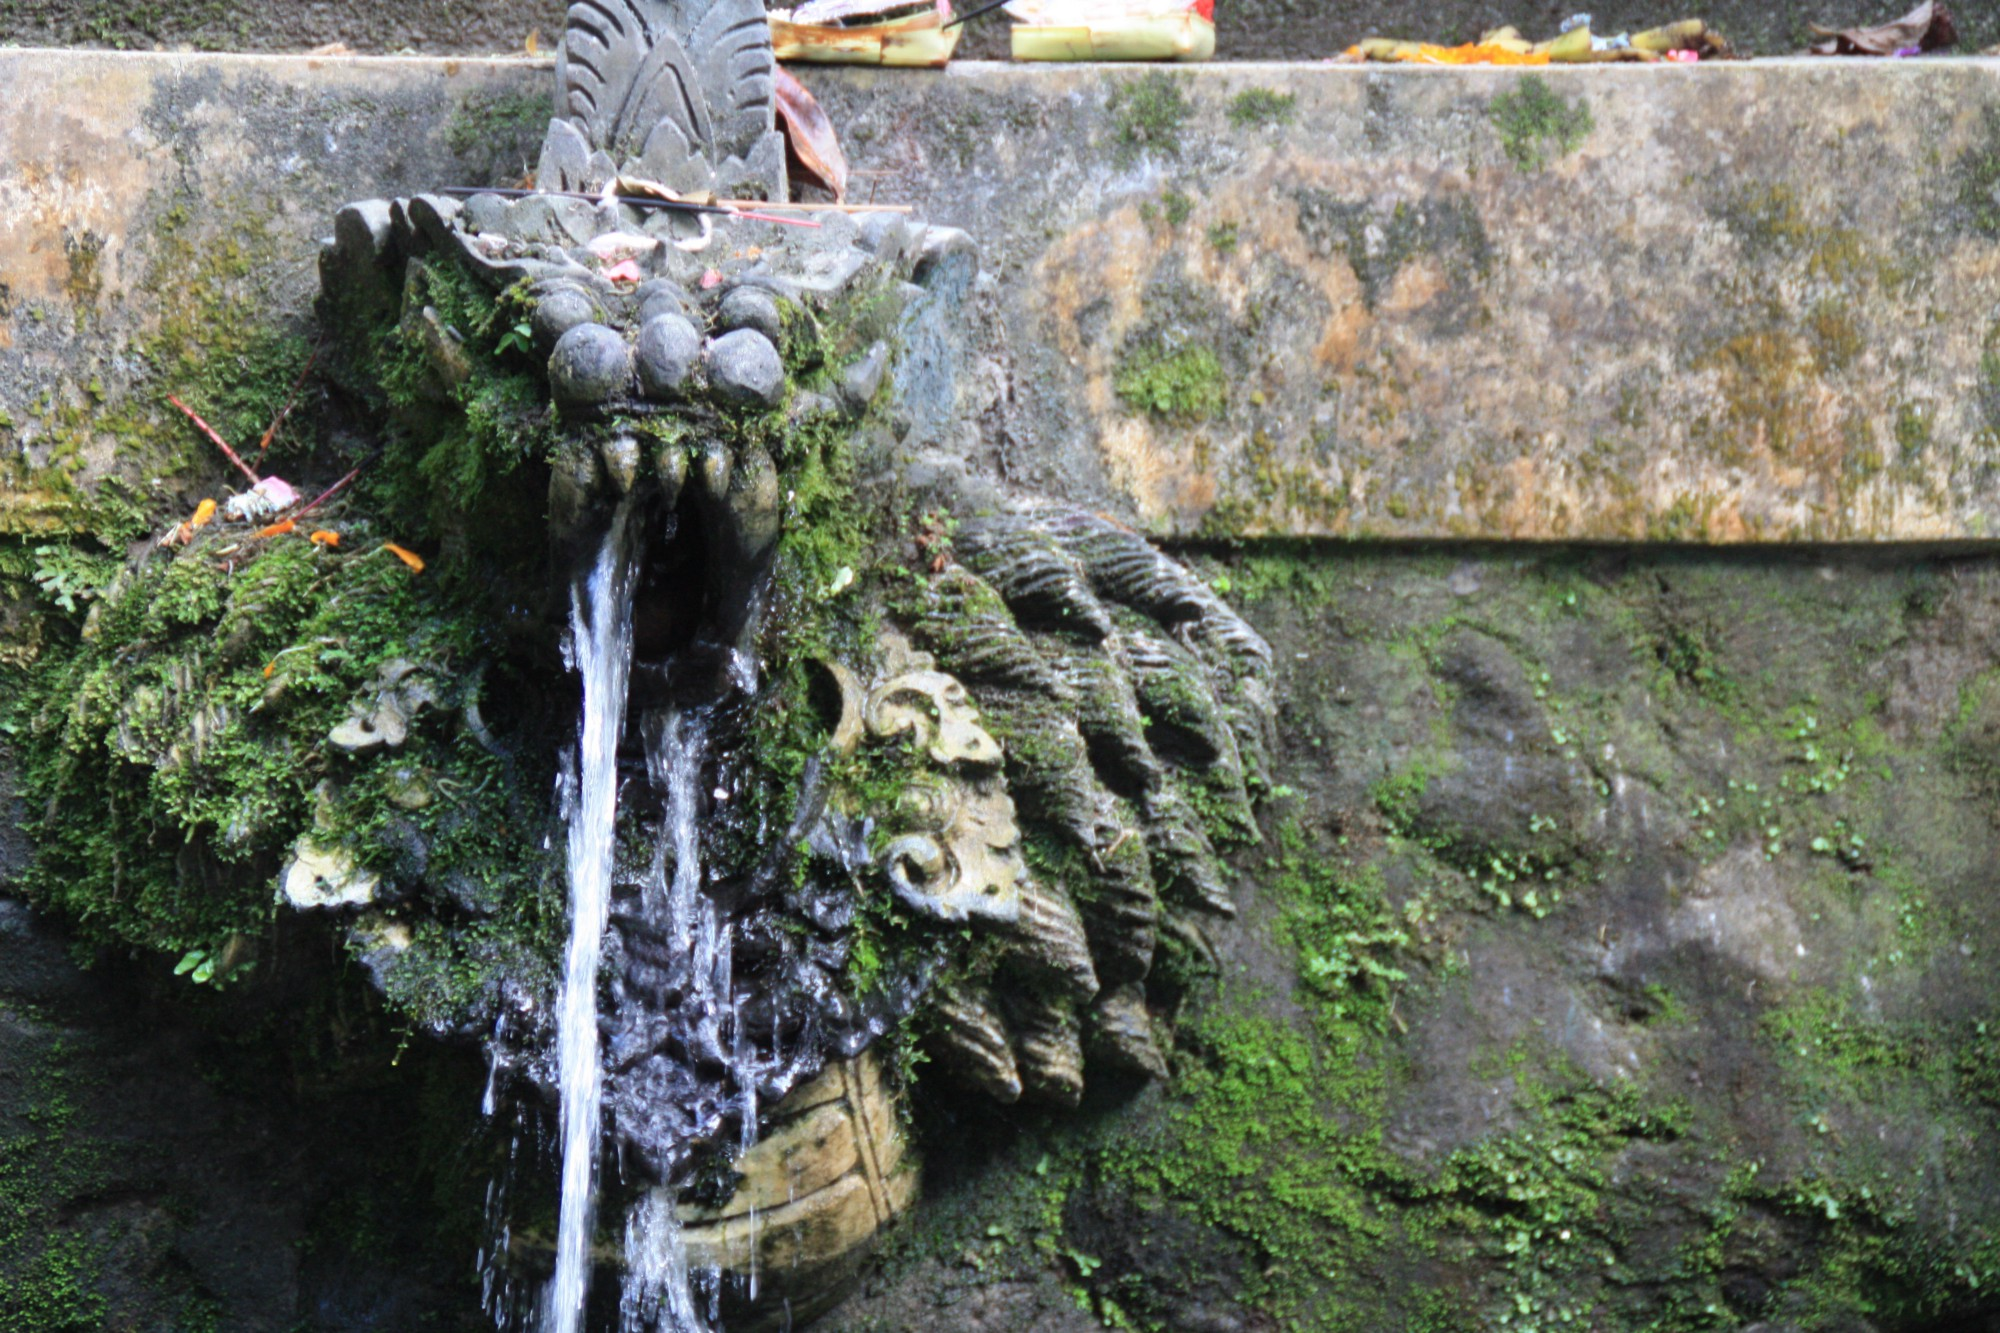 A close up of a stone water spout covered in moss, adorned with incense and offerings.